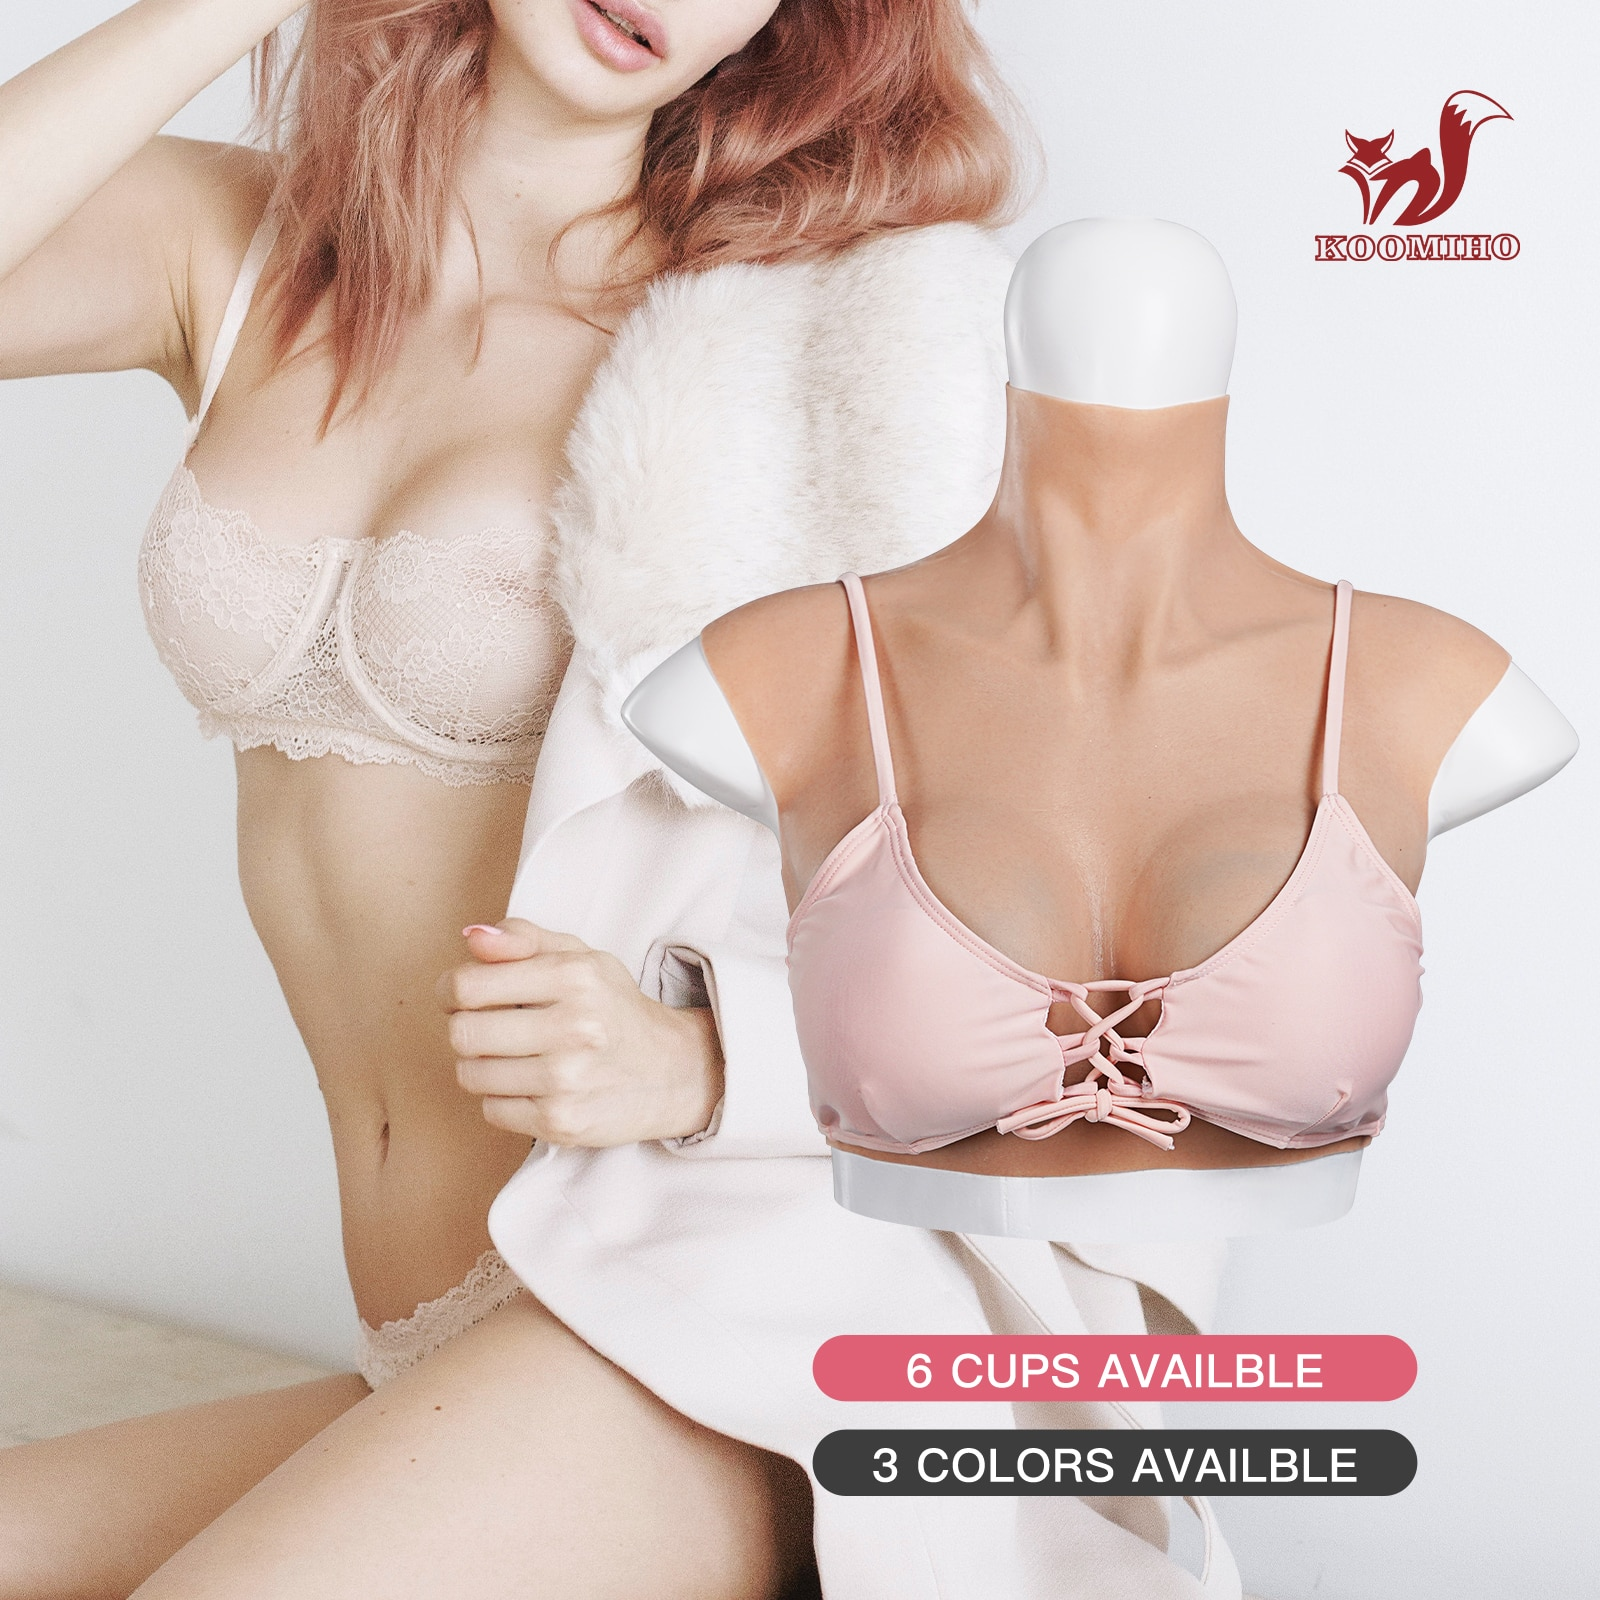 KOOMIHO New Hot Realistic Silicone Breast Forms Crossdresser A/B/C/D/E/G Cup Fake Boobs Drag Queen Shemale Transgender Cosplay